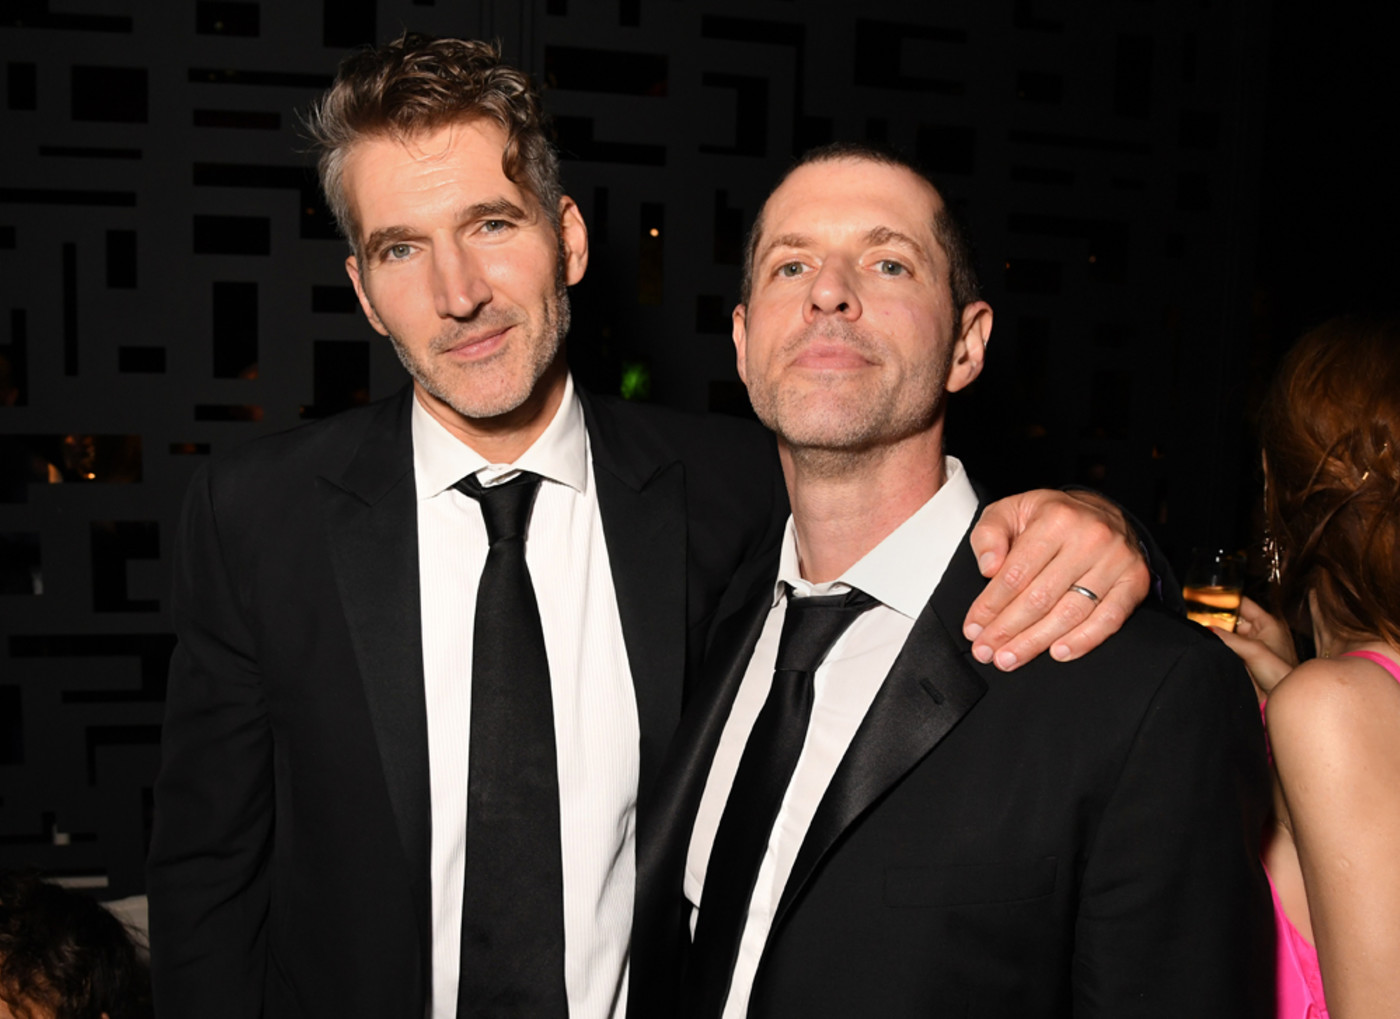 David Benioff and D.B. Weiss attend HBO's Official 2019 Emmy After Party